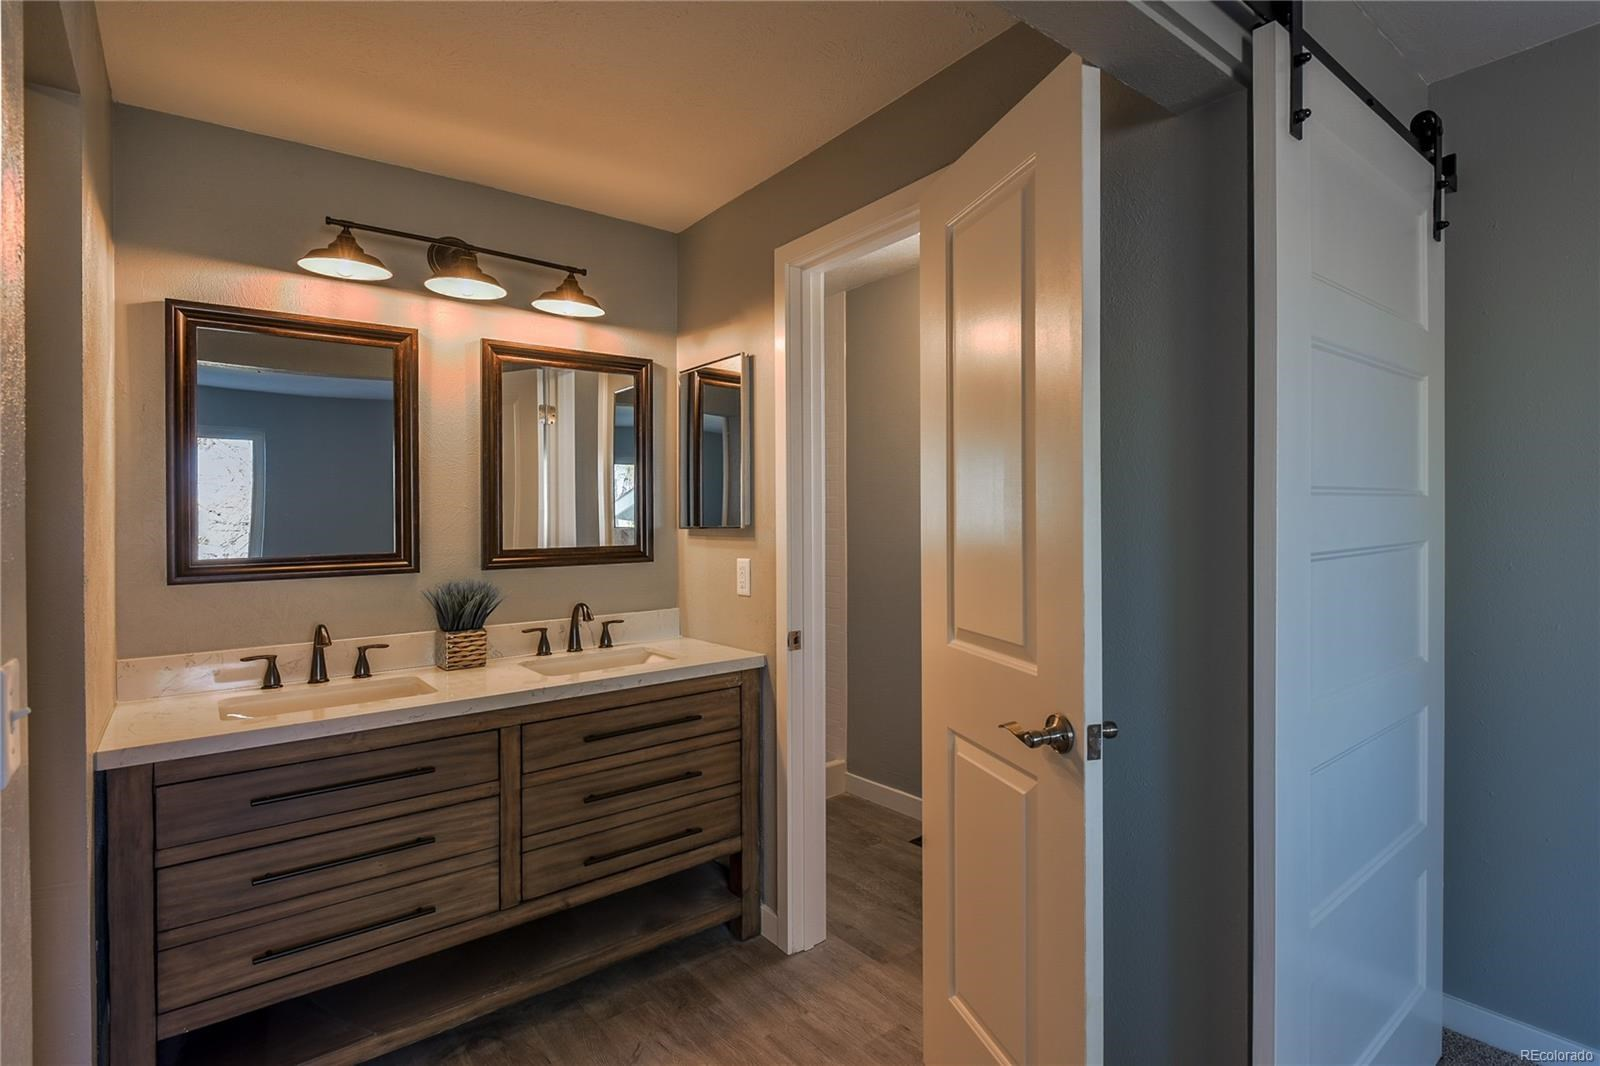 MLS# 8183776 - 8 - 2547 W 104th Circle, Westminster, CO 80234